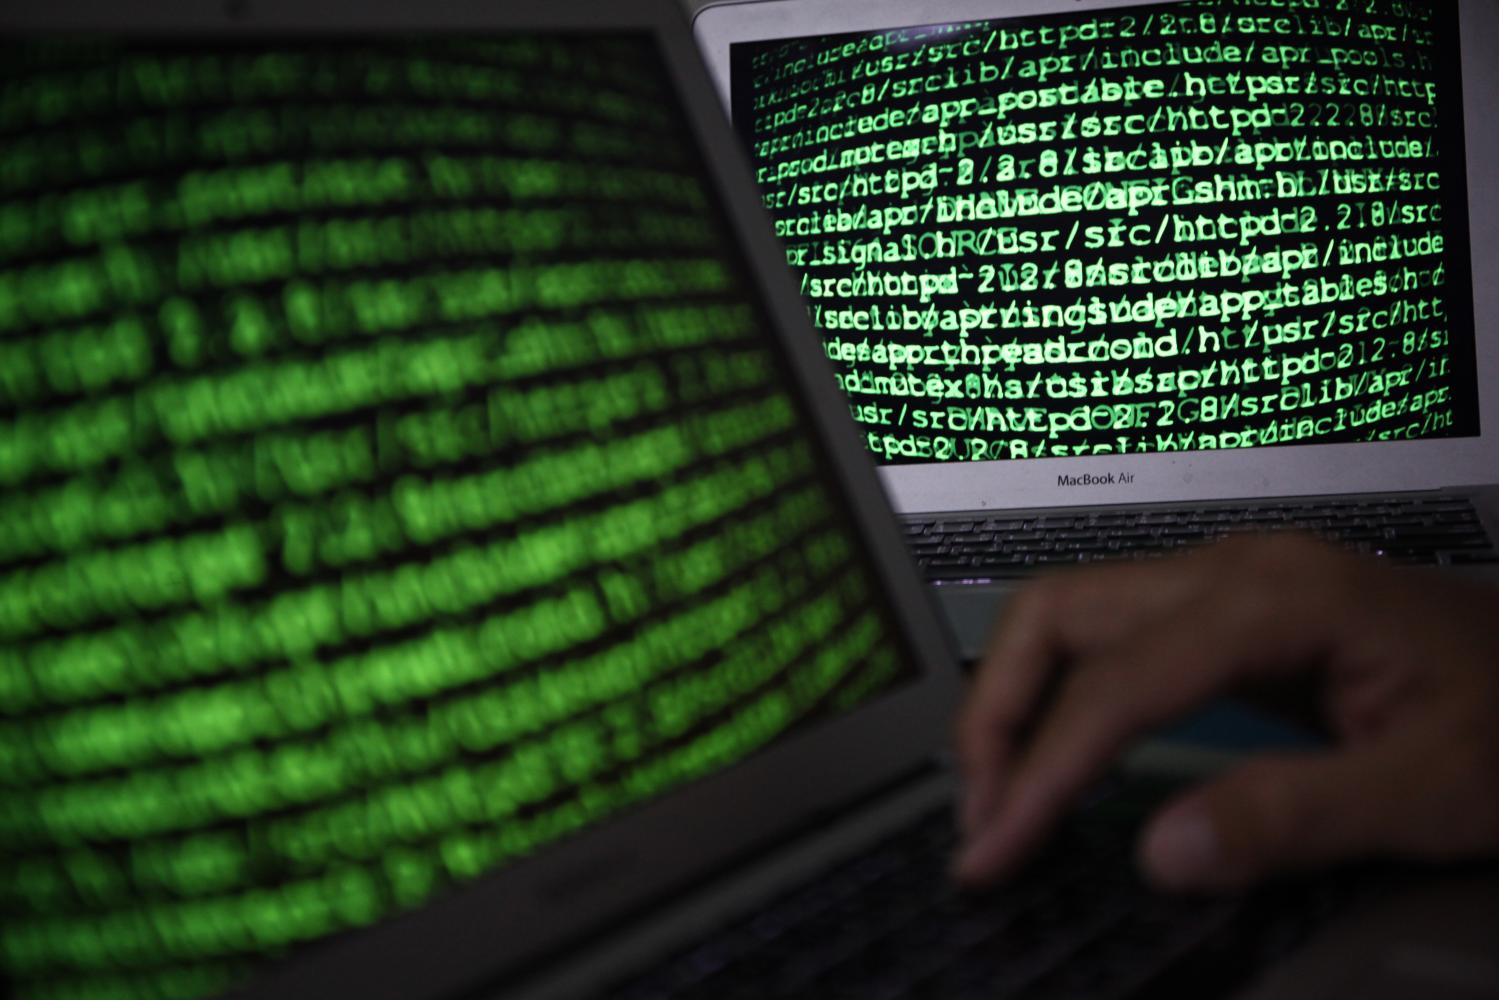 The rise of cyberthreats has alarm bells ringing for corporations and individuals seeking protection. (Photo by Wichan Charoenkiatpakul)